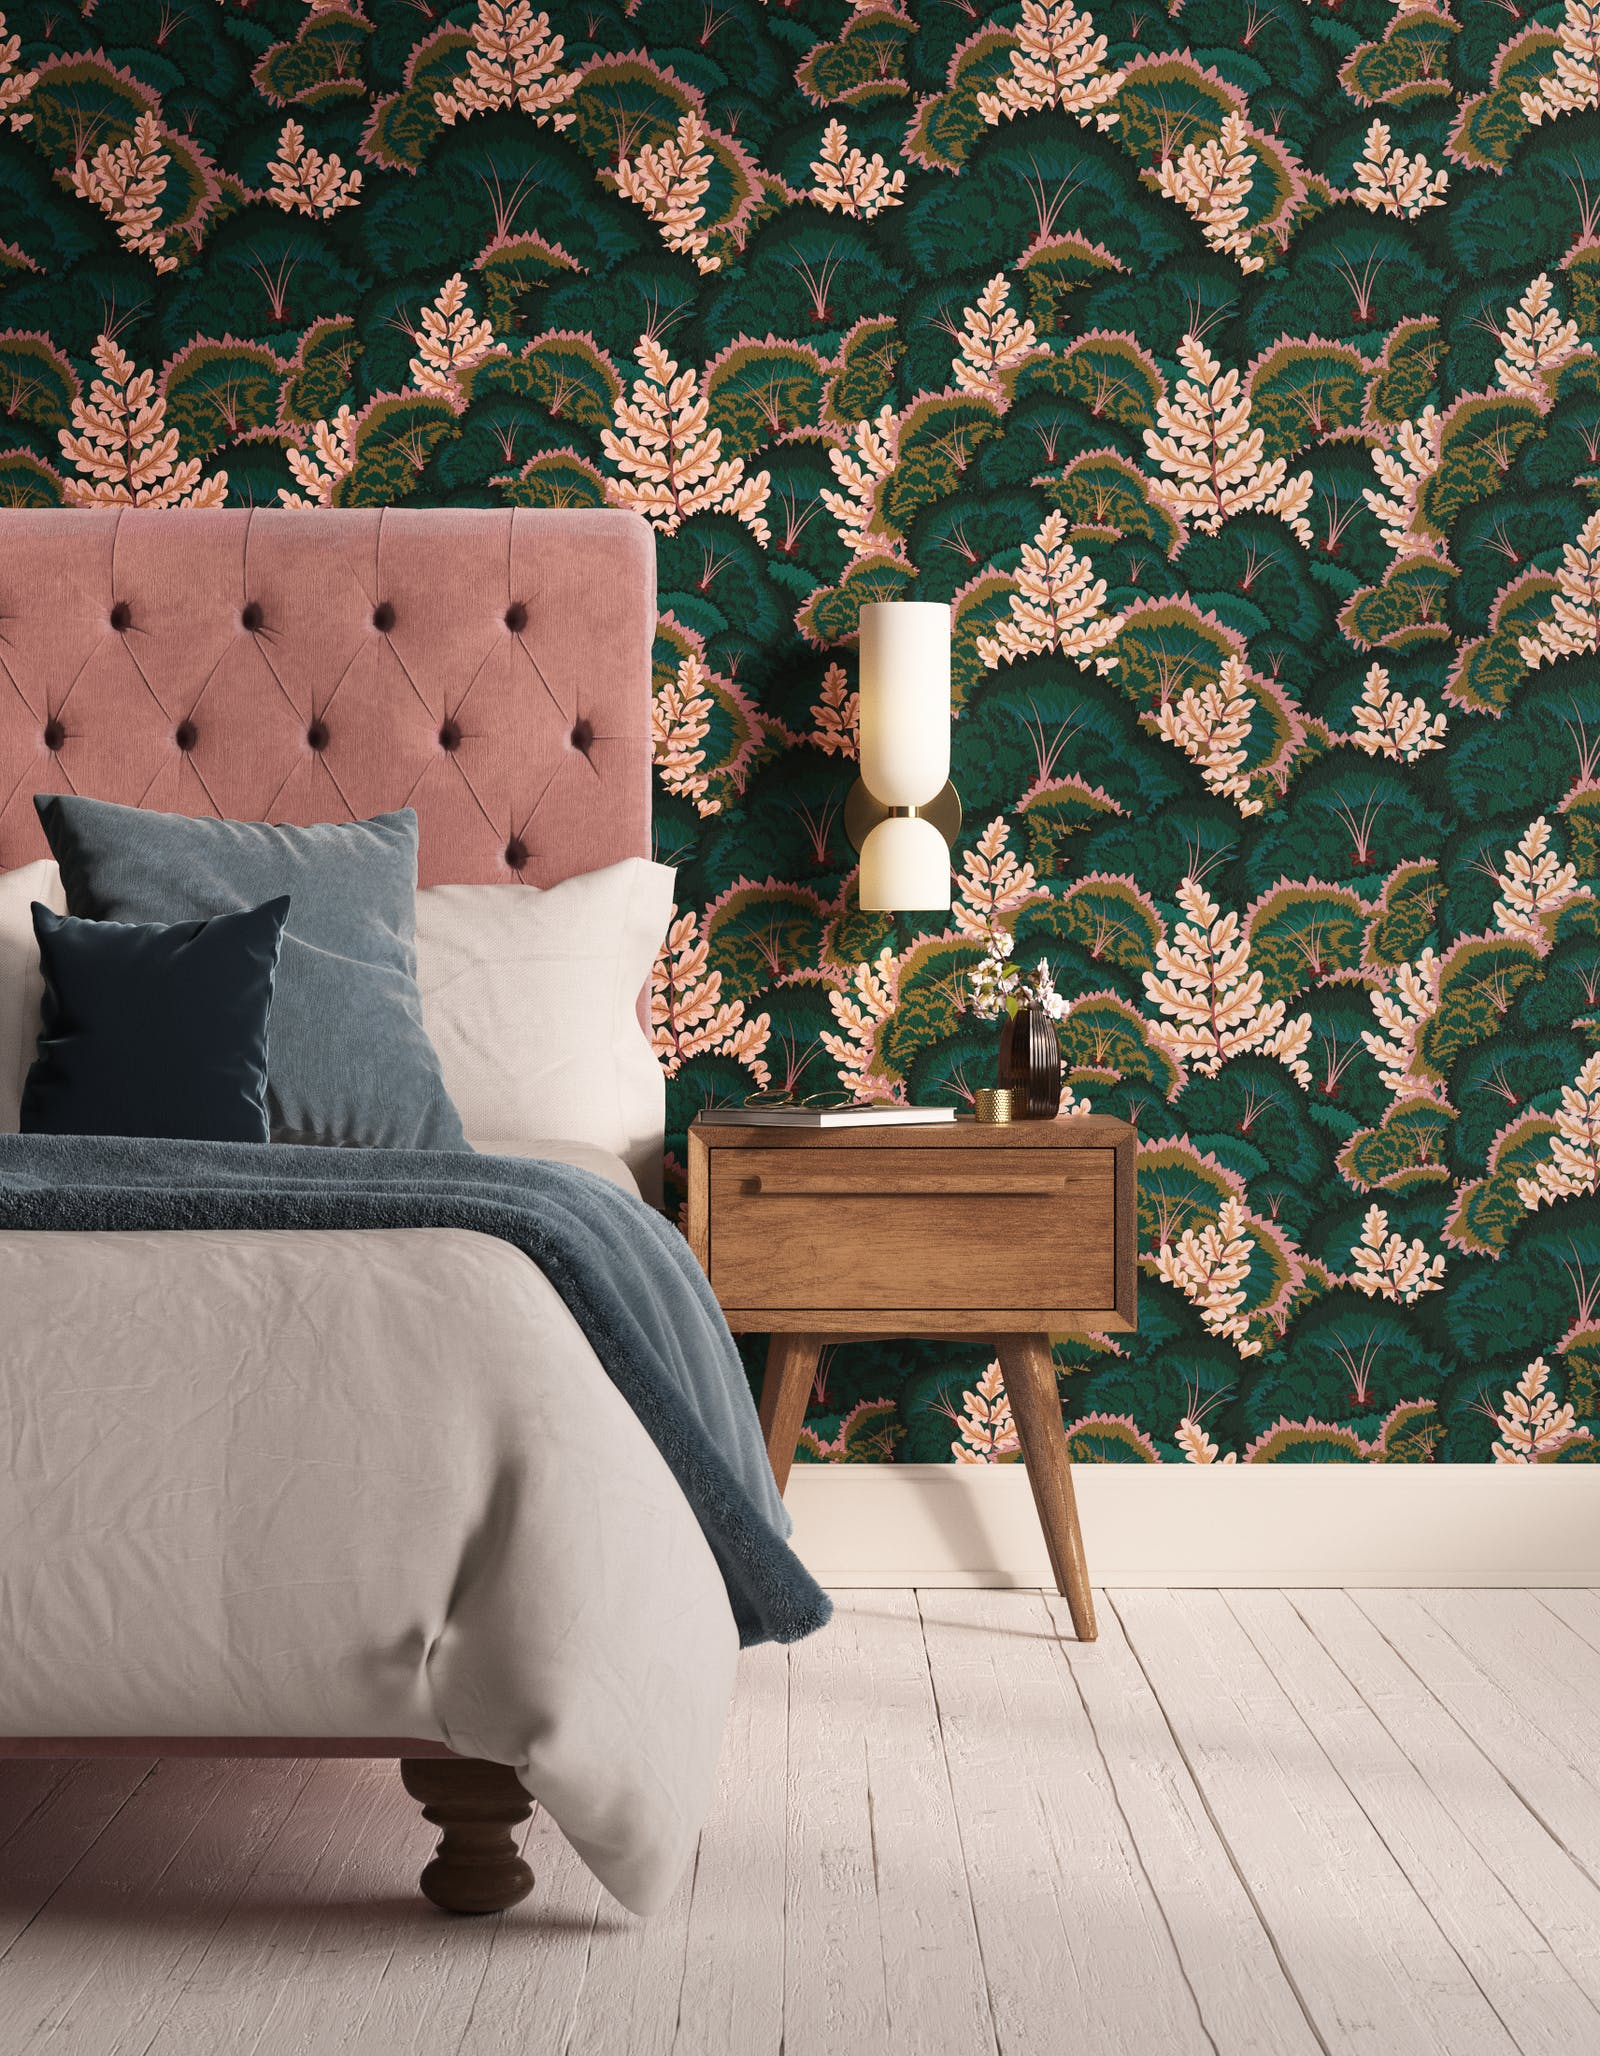 Bedroom decorated with Lick Electric Poppies 02, a green floral wallpaper